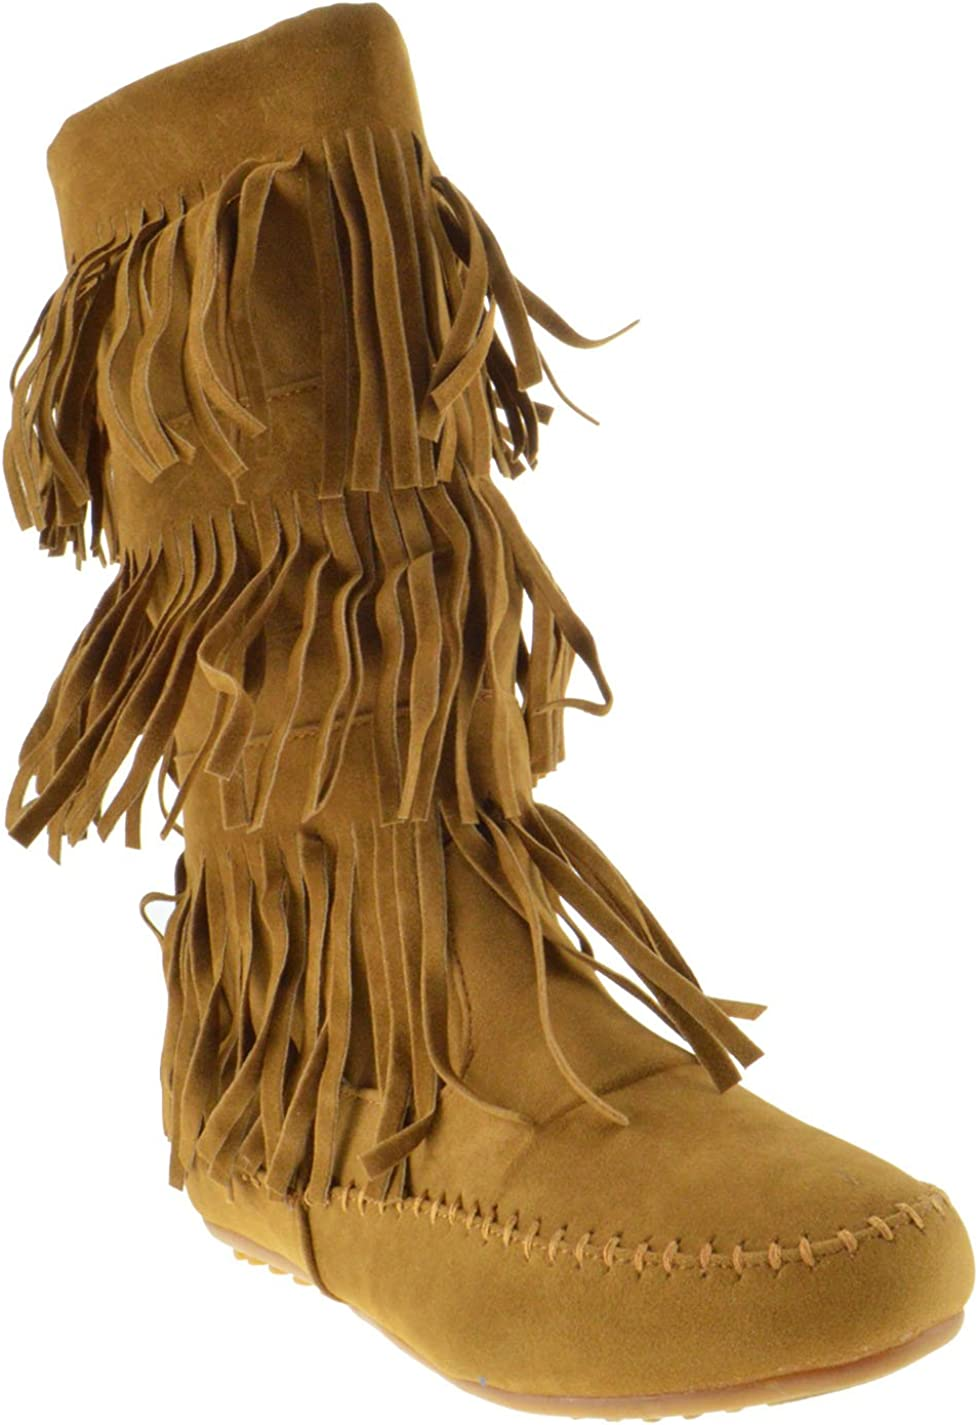 SHOEDEZIGNS L 3228-1 Womens Fringe Moccasin 3 Layer Mid-Calf Boots